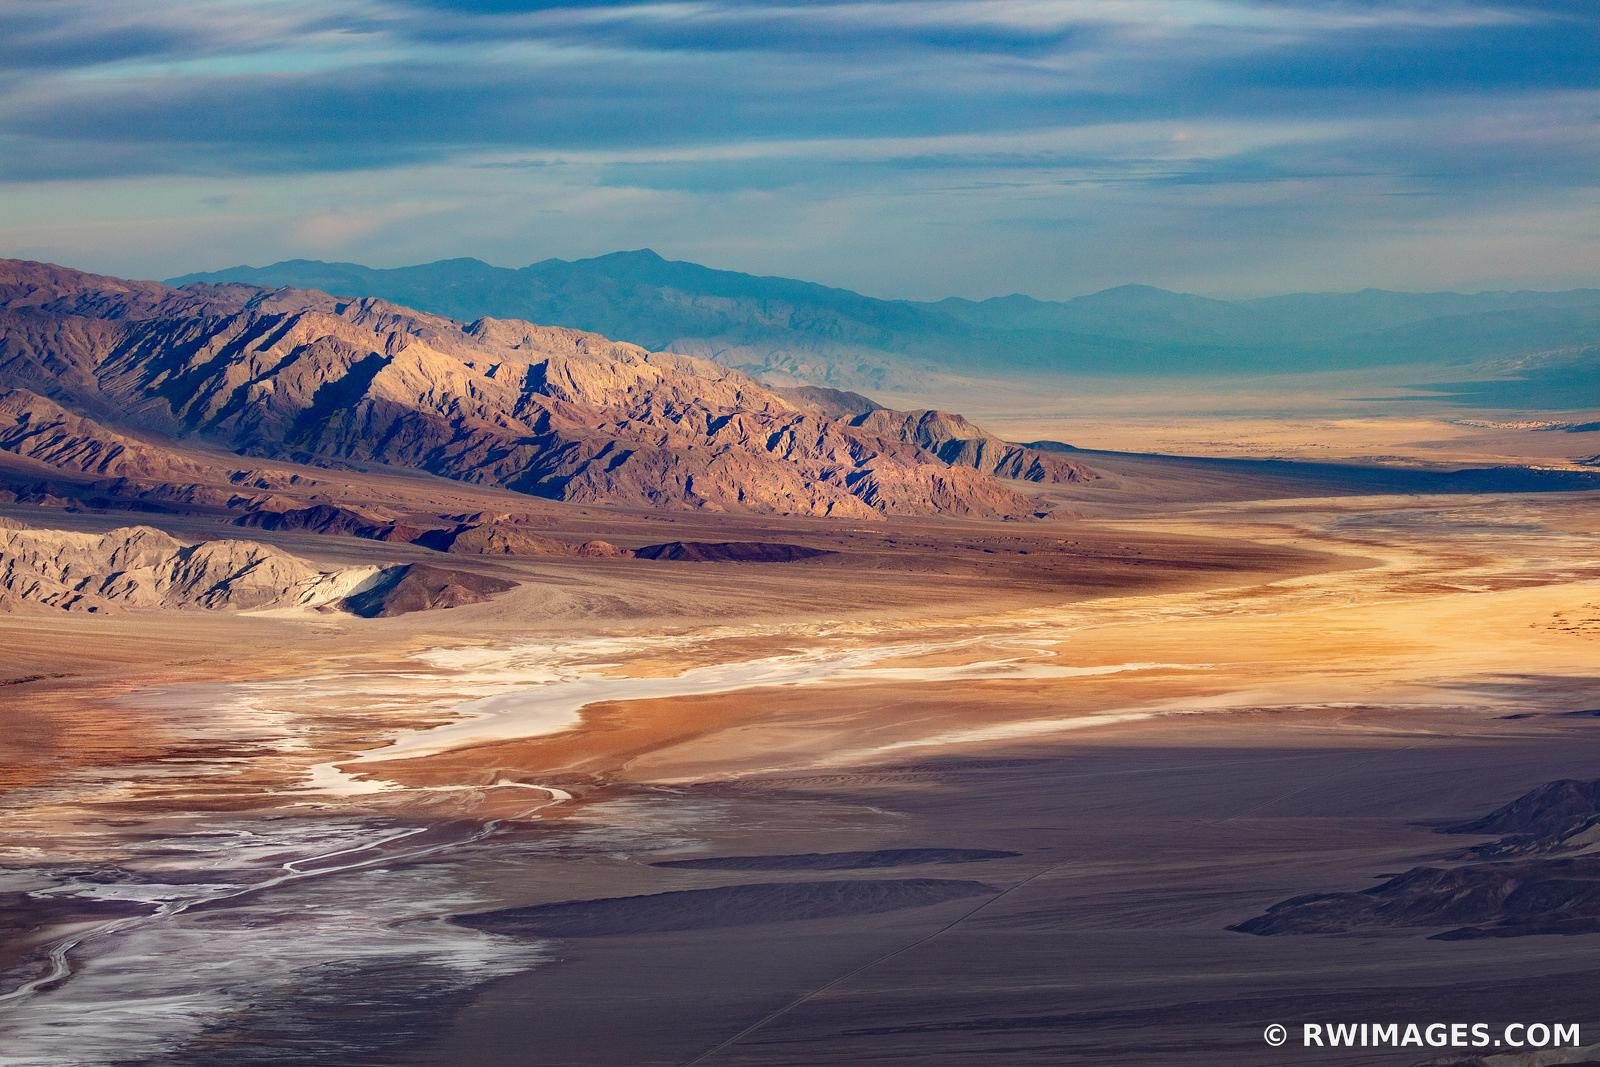 DANTE'S VIEW DEATH VALLEY CALIFORNIA AMERICAN SOUTHWEST DESERT LANDSCAPE